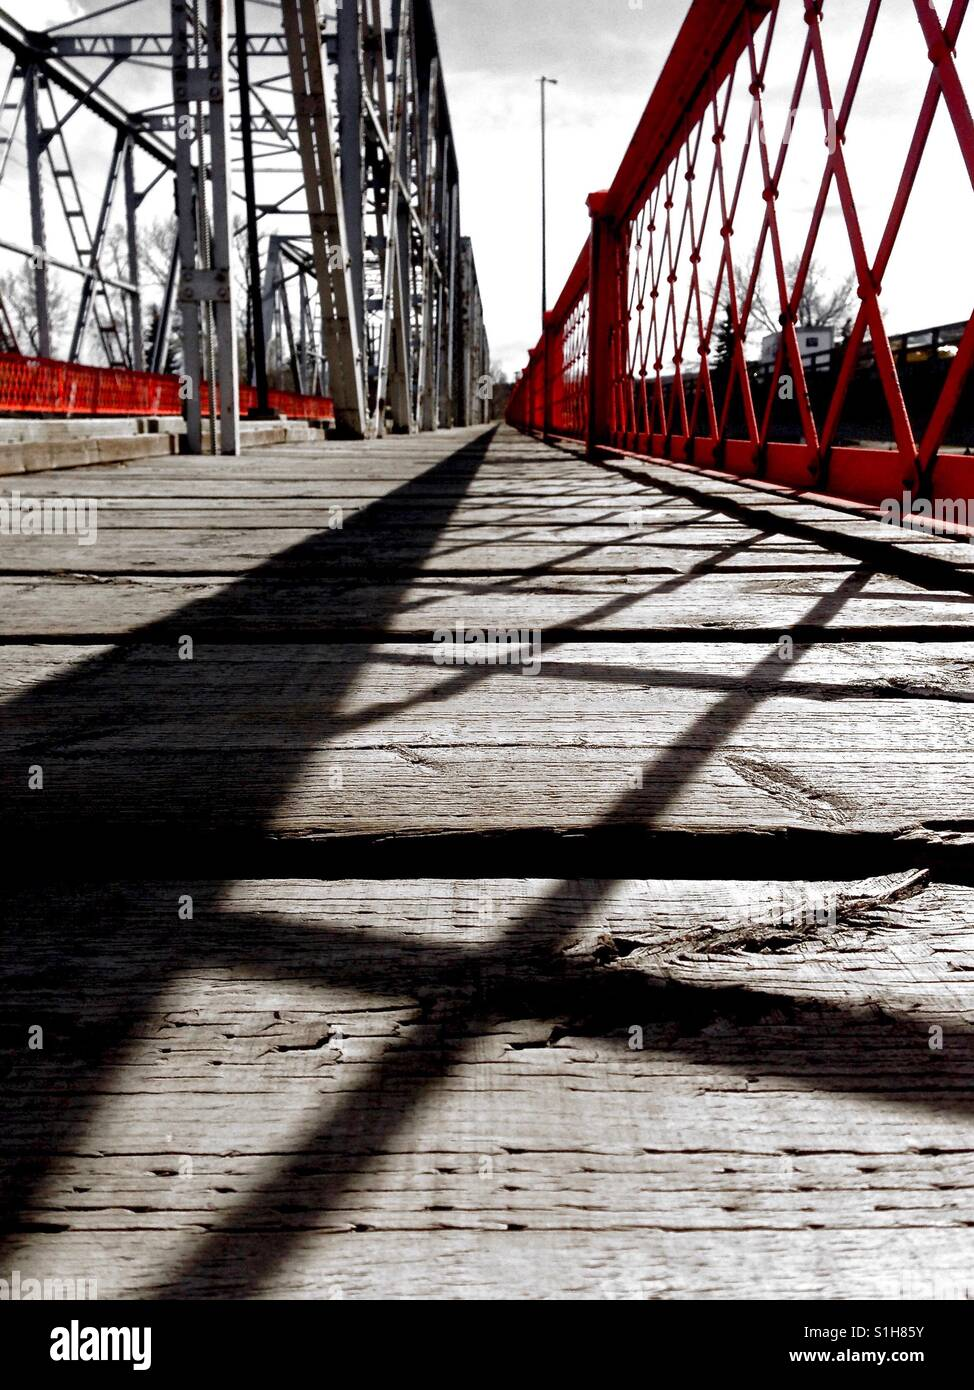 Low view of bridge in monotone and red - Stock Image